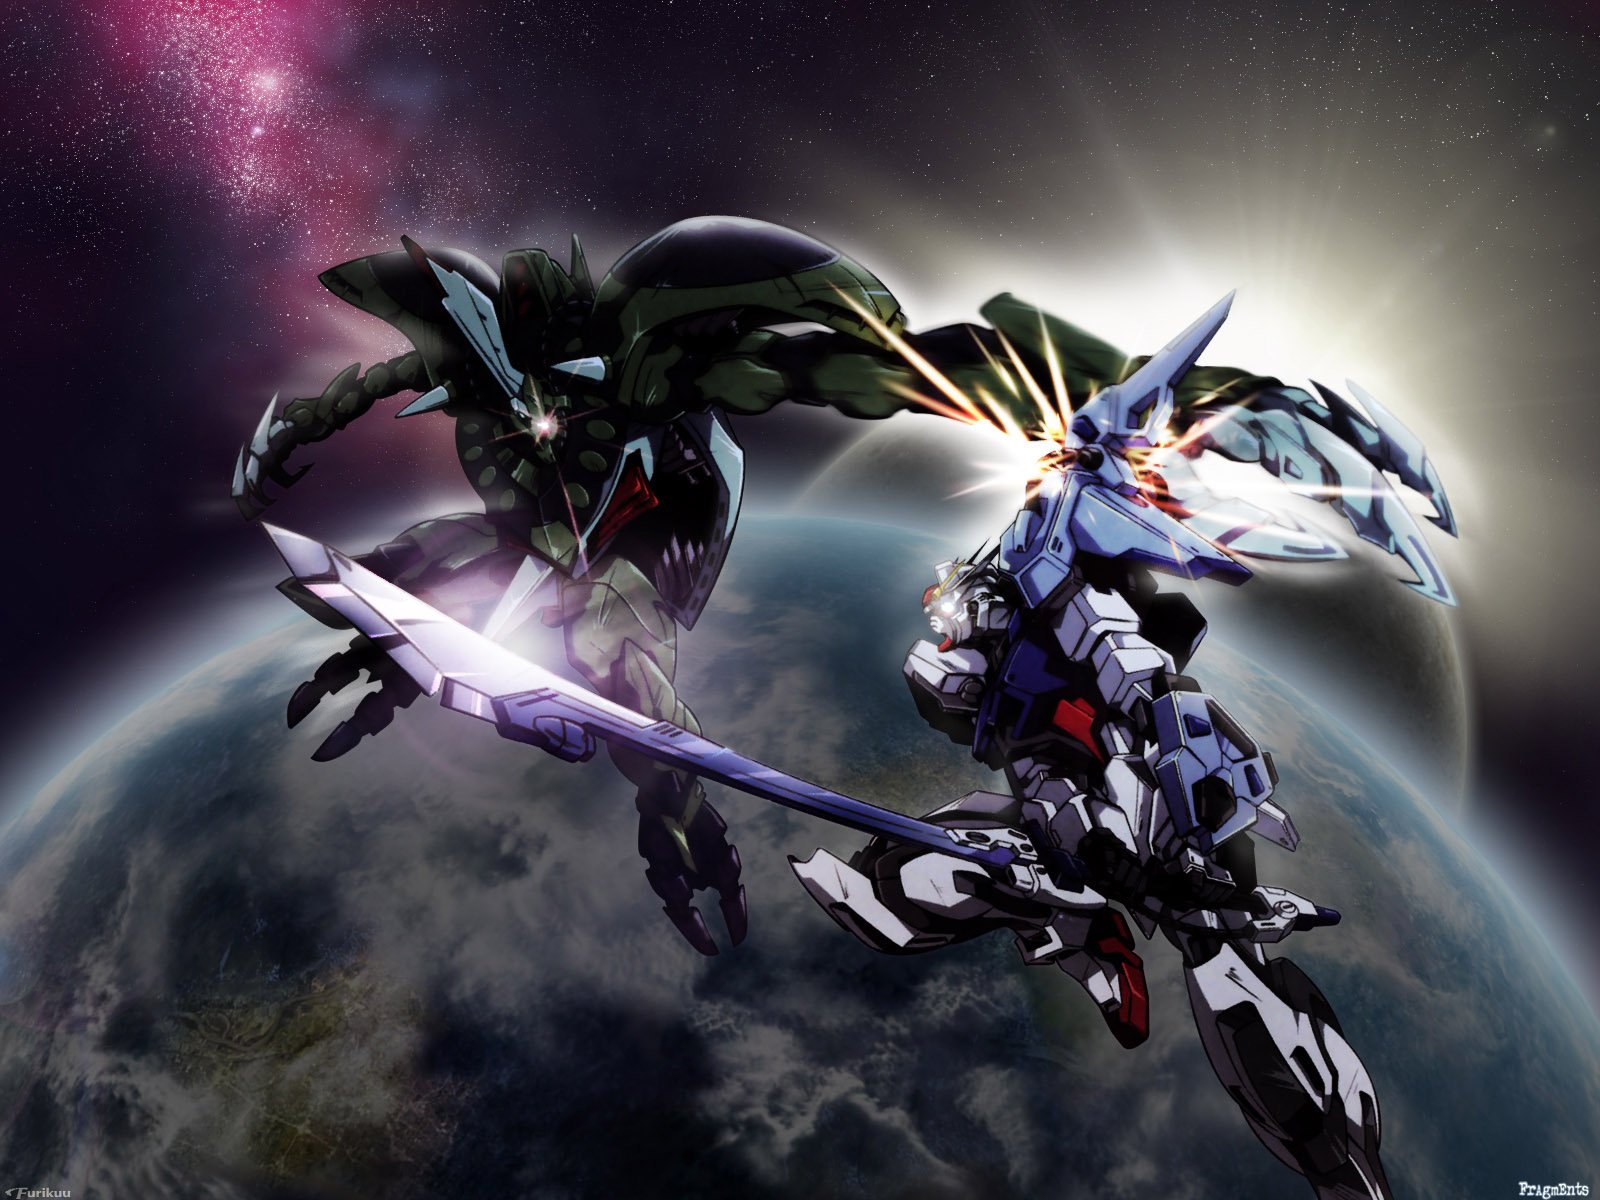 Gundam Seed Wallpapers Best HD Desktop Wallpapers Widescreen 1600x1200